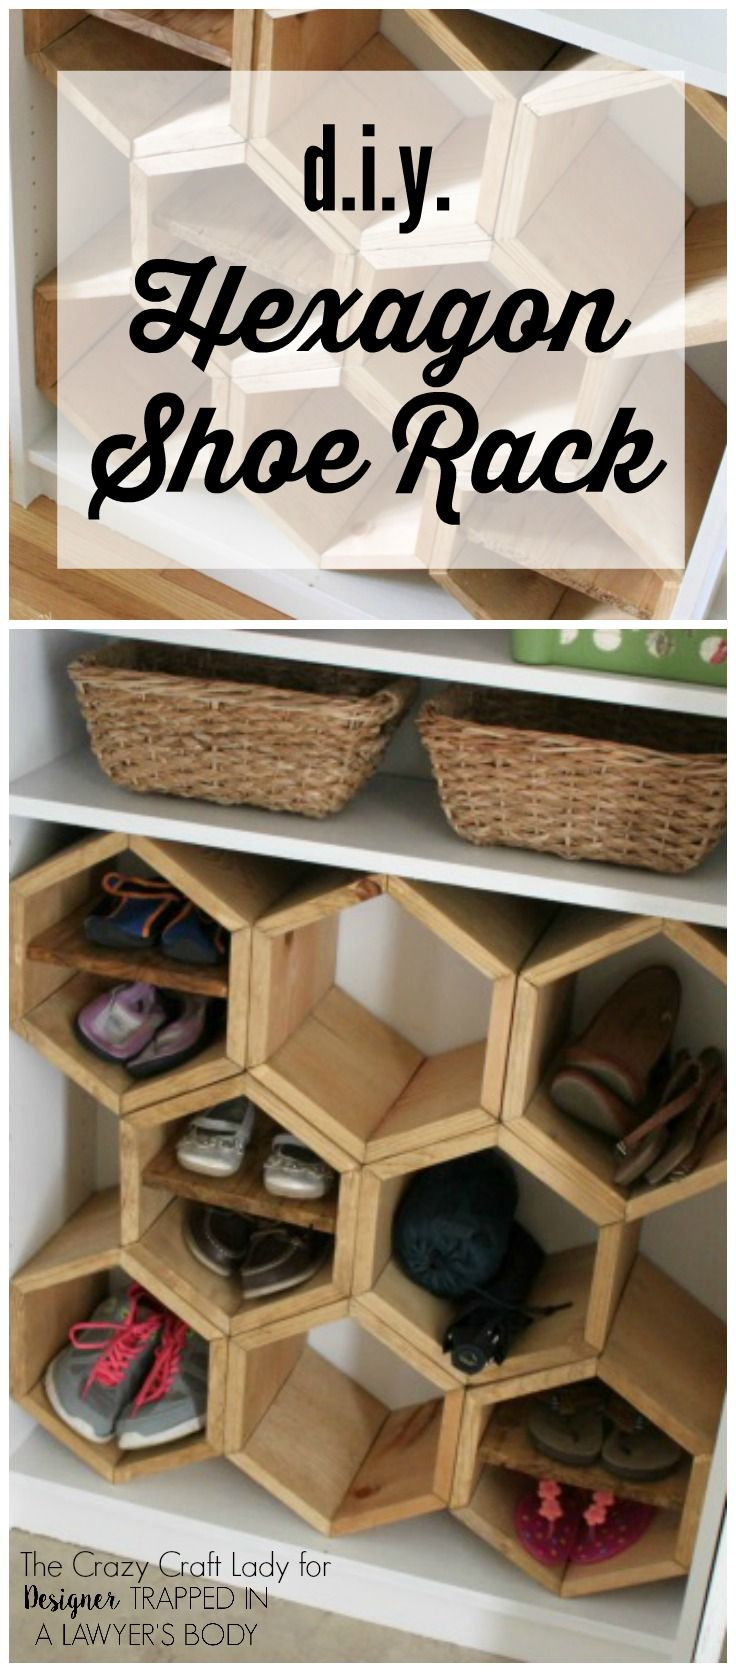 hexagon diy shoe rack enter rangement rangement chaussures maison. Black Bedroom Furniture Sets. Home Design Ideas